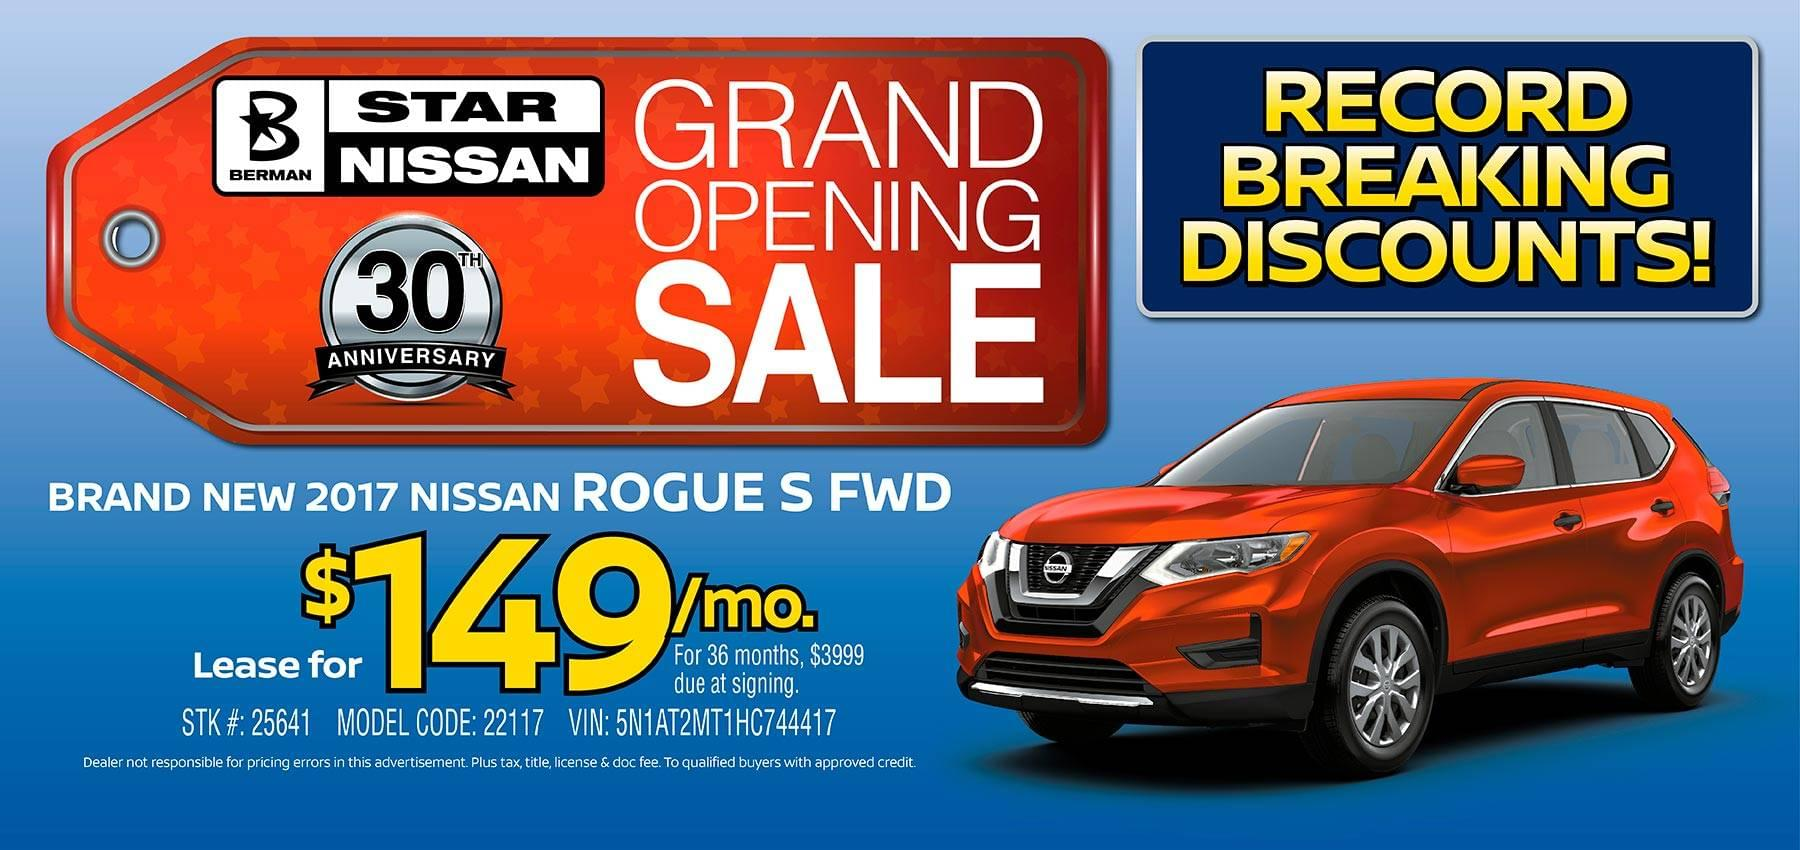 Nissan Dealers In Nj >> Nissan Rogue Lease Deals Nj Cilory Coupons 2018